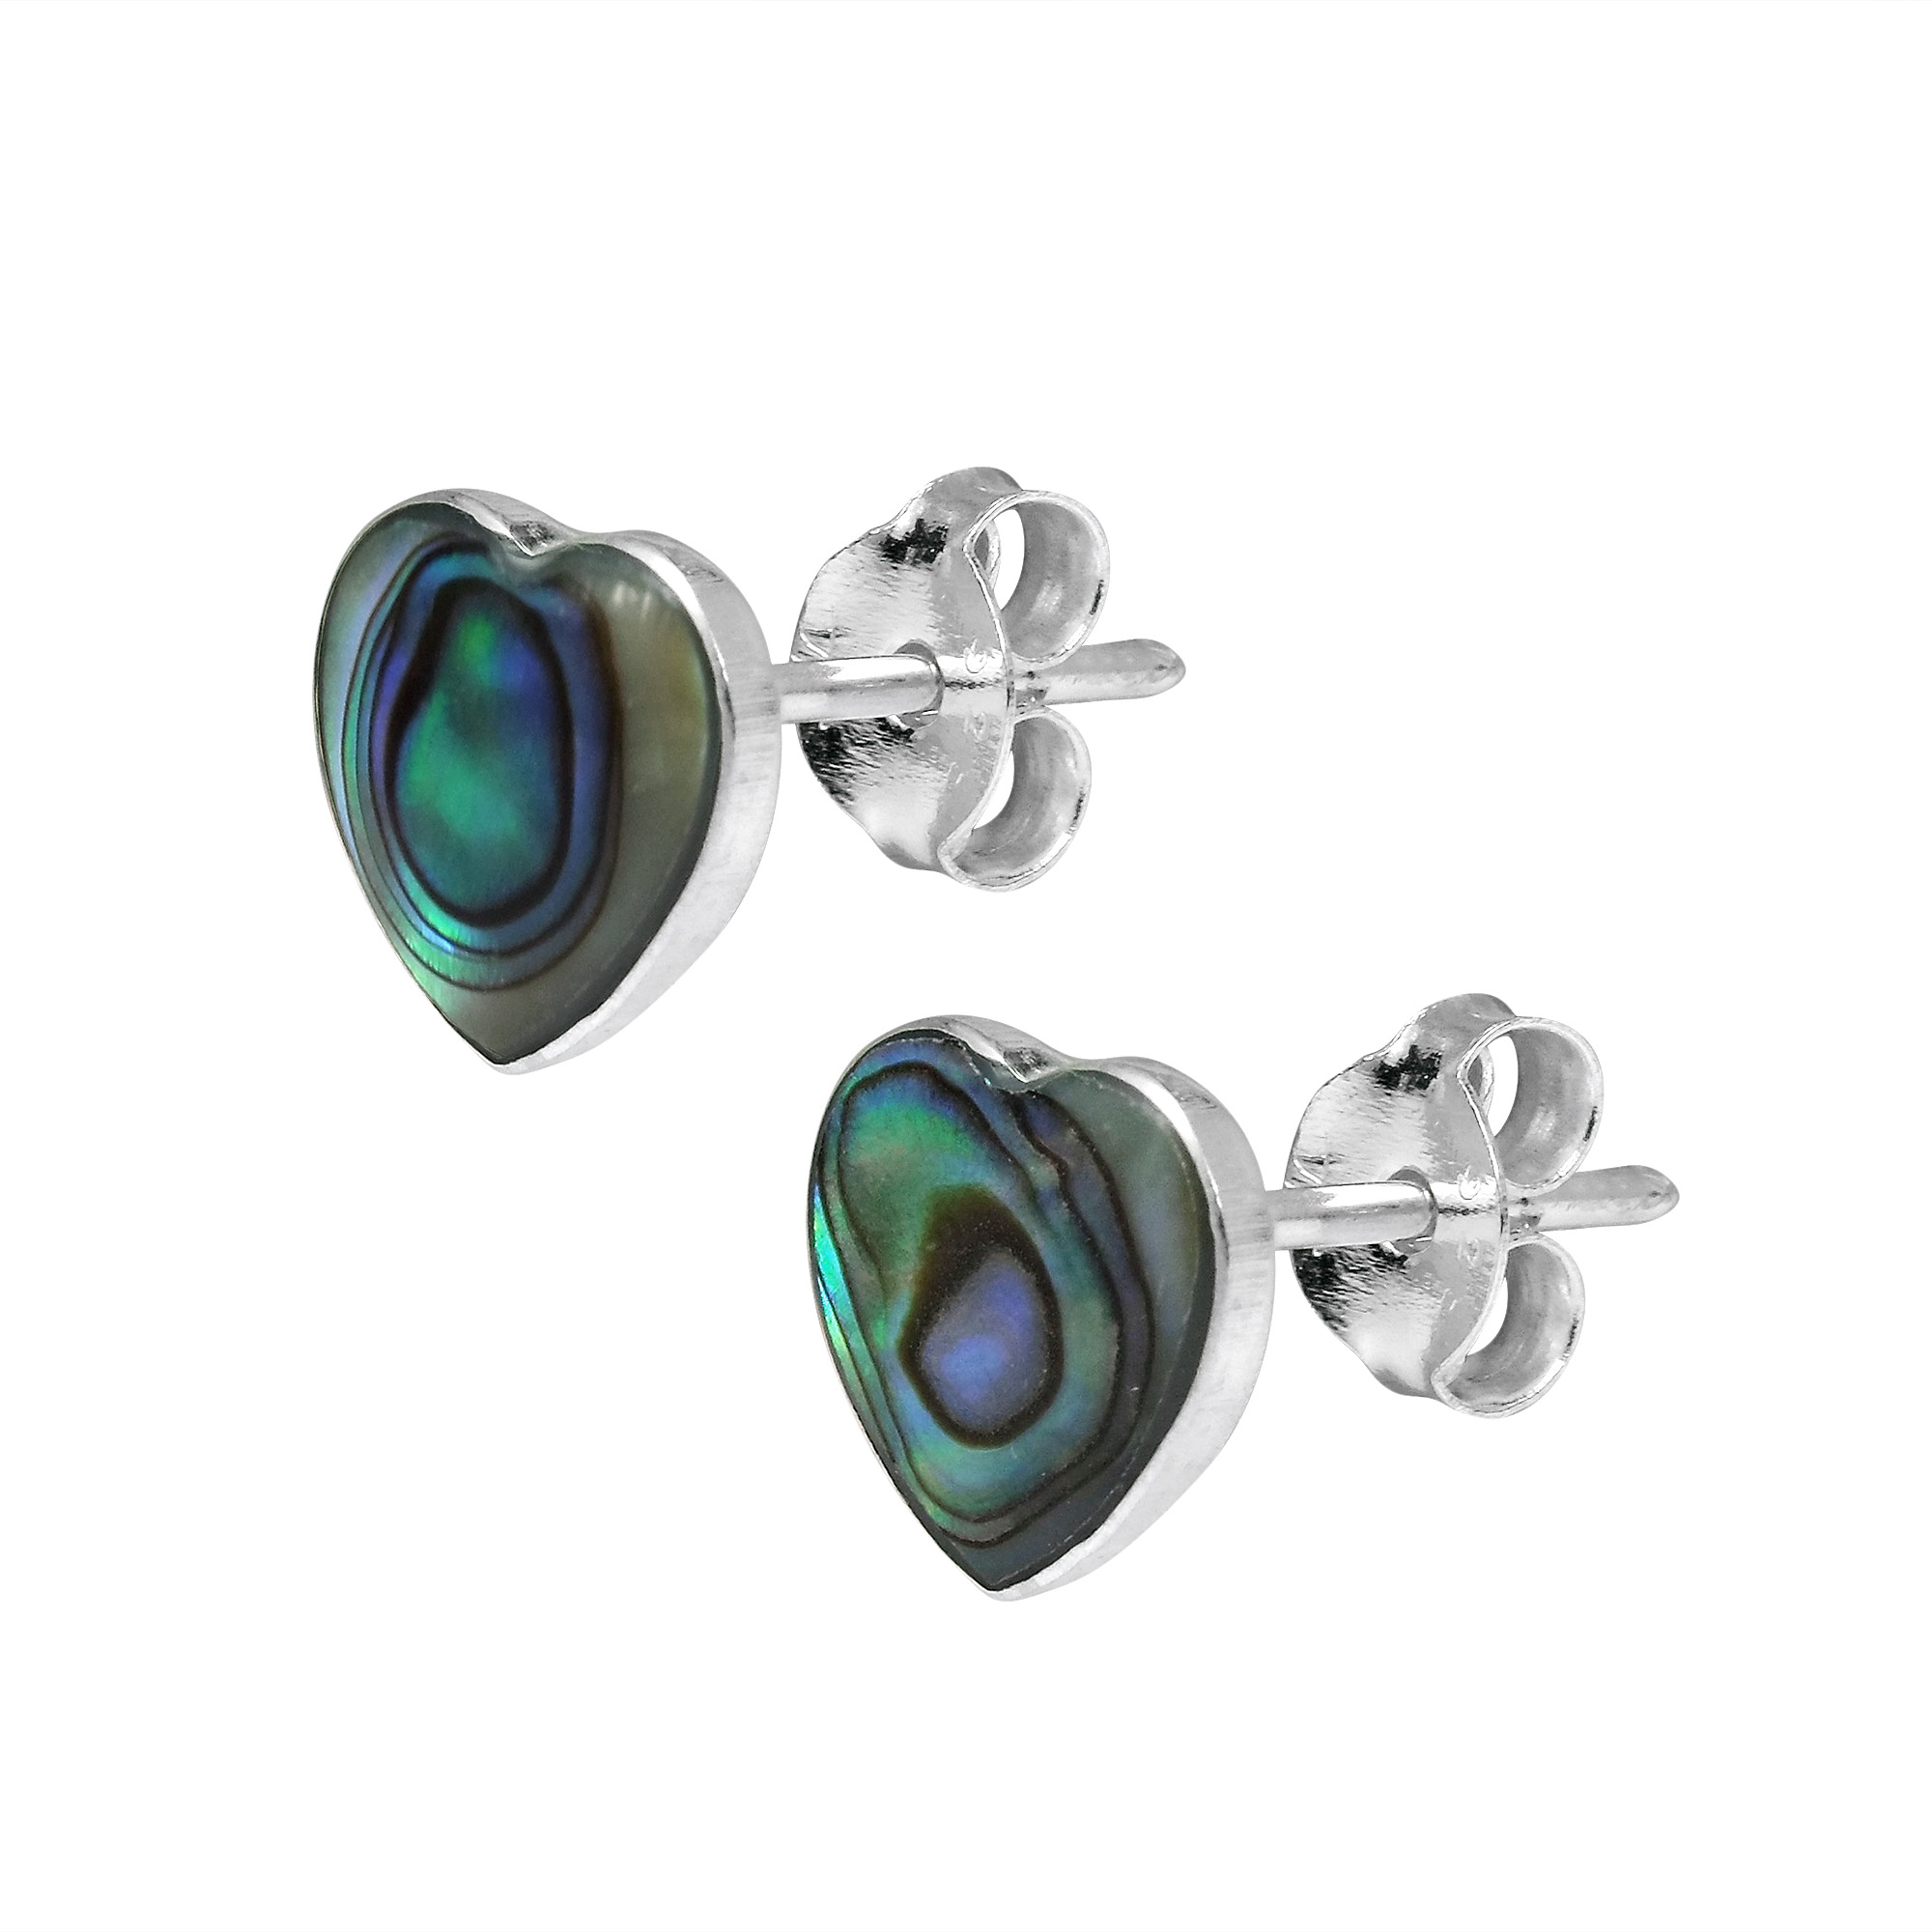 trendy this abalone designed aeravida square piece ha and beautiful silver earrings se heart round cute seashell oval which artisan products accents khun details comes inlay jai inlaid stud stone in